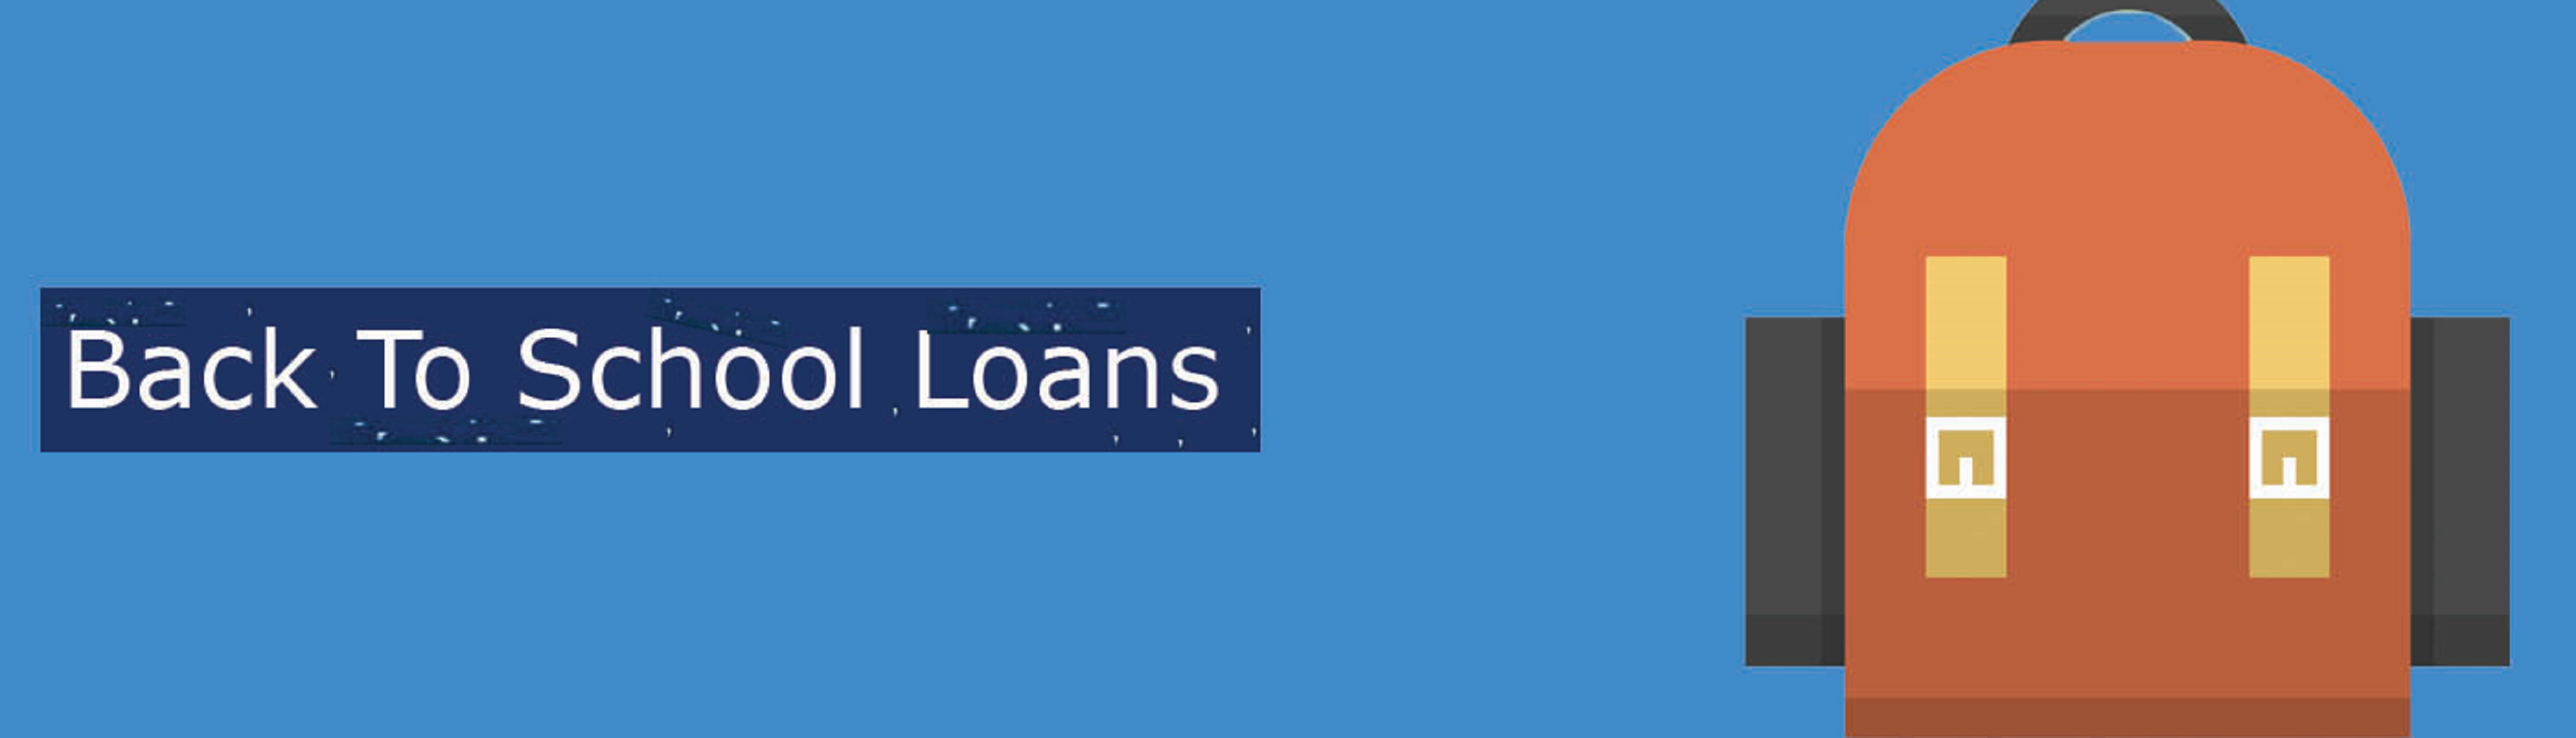 full size back-to-school-loans-banner